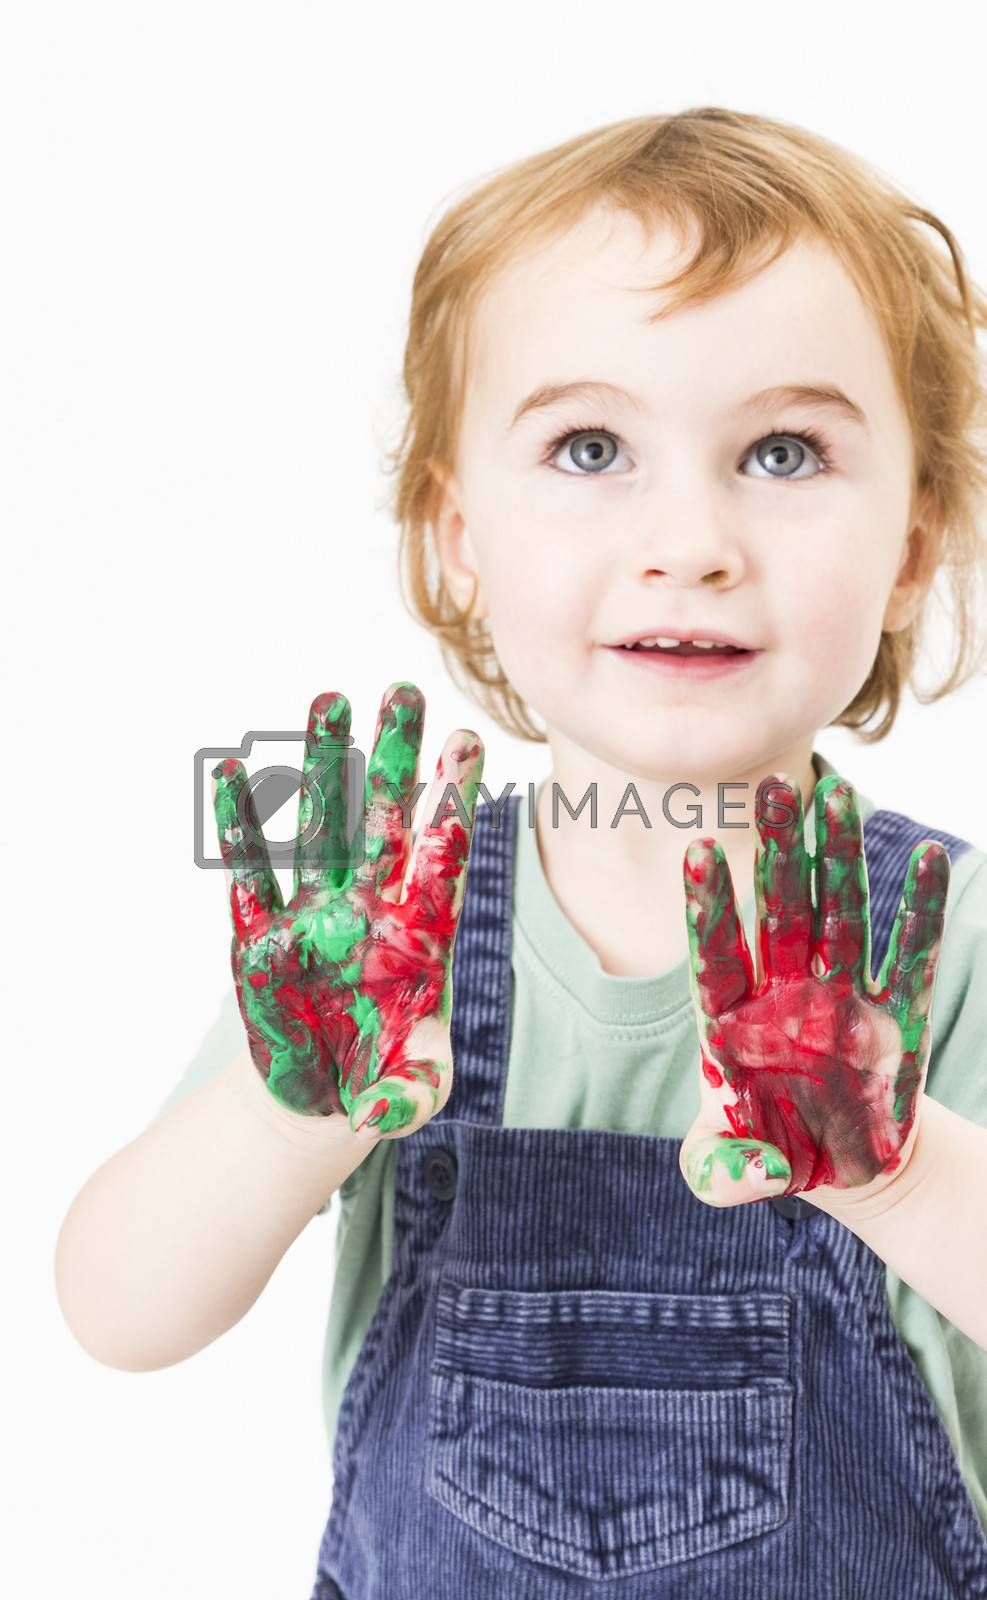 cute little girl with finger paint. vertical image in light grey background